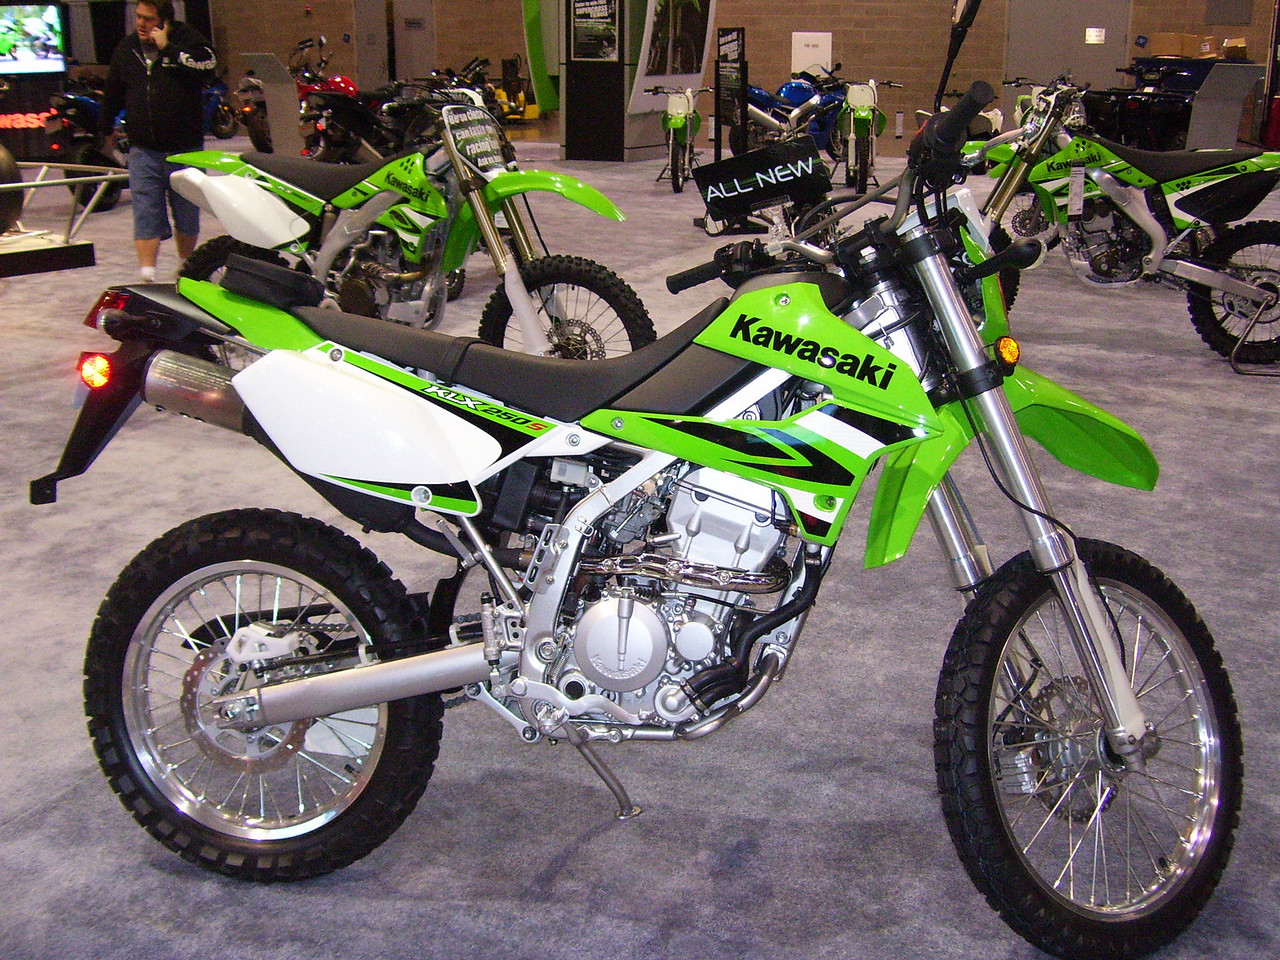 The KLX 250S looked good. But sadly to tall for Sylvia and any other inseam challenged person.